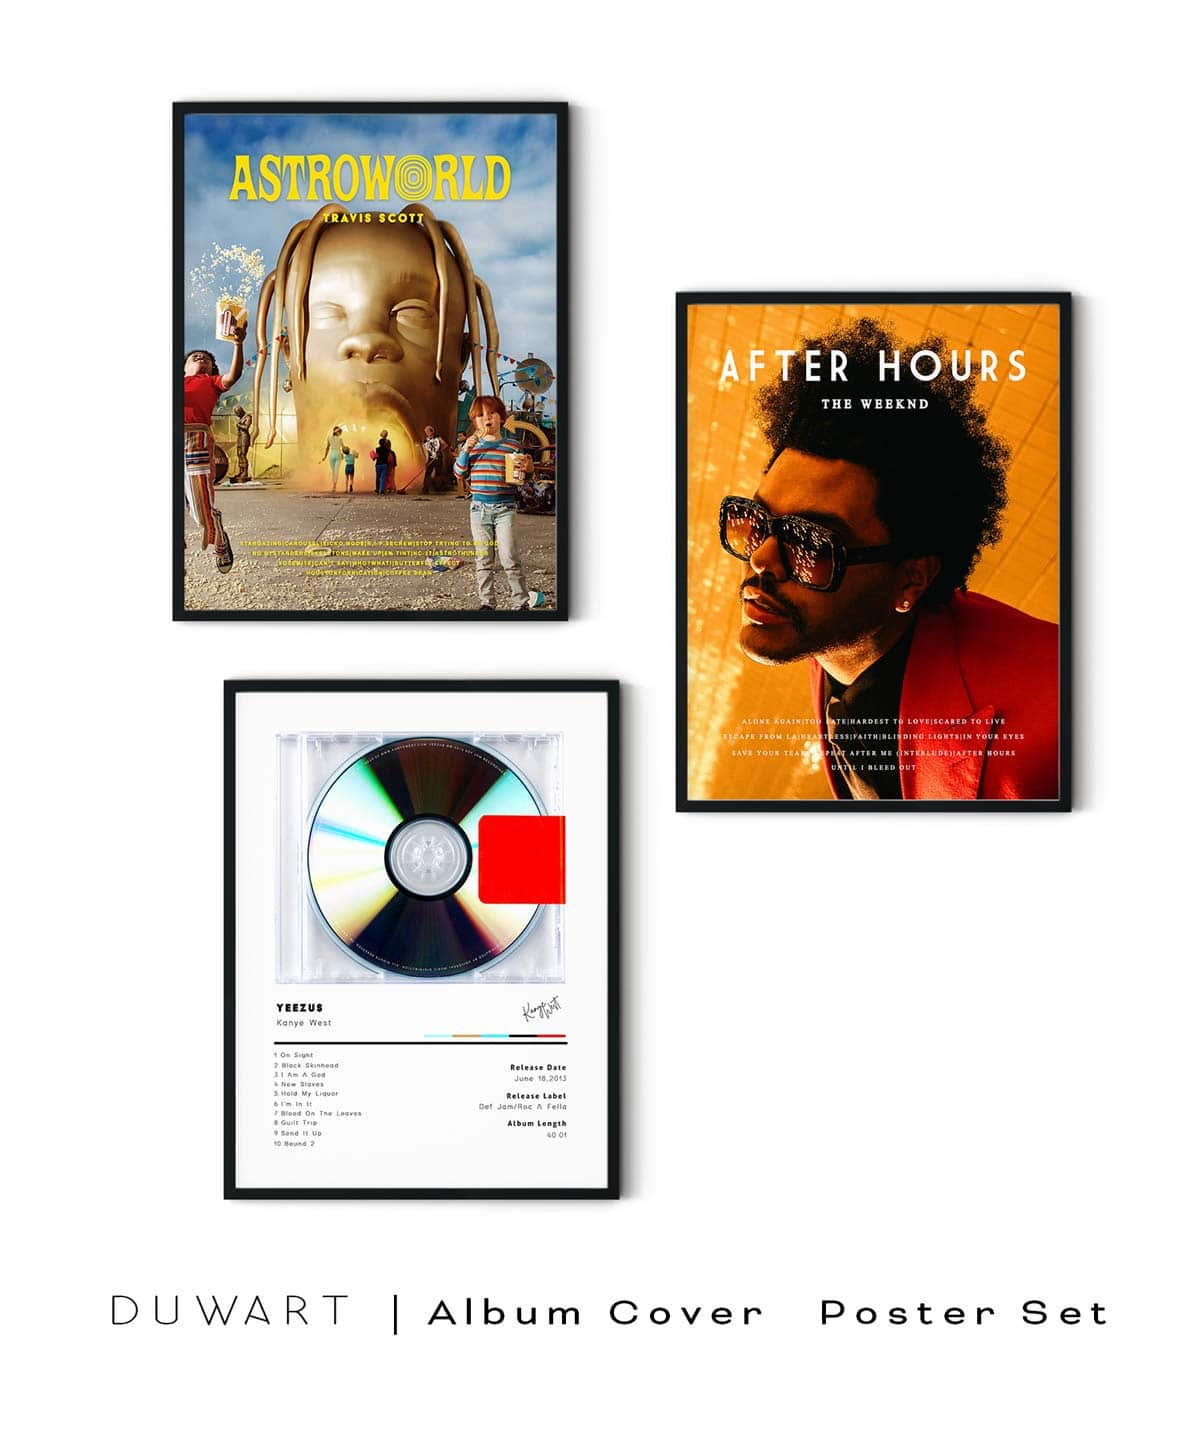 Album-Cover-Poster-Set-Gallery-Wall-White-Background-Duwart